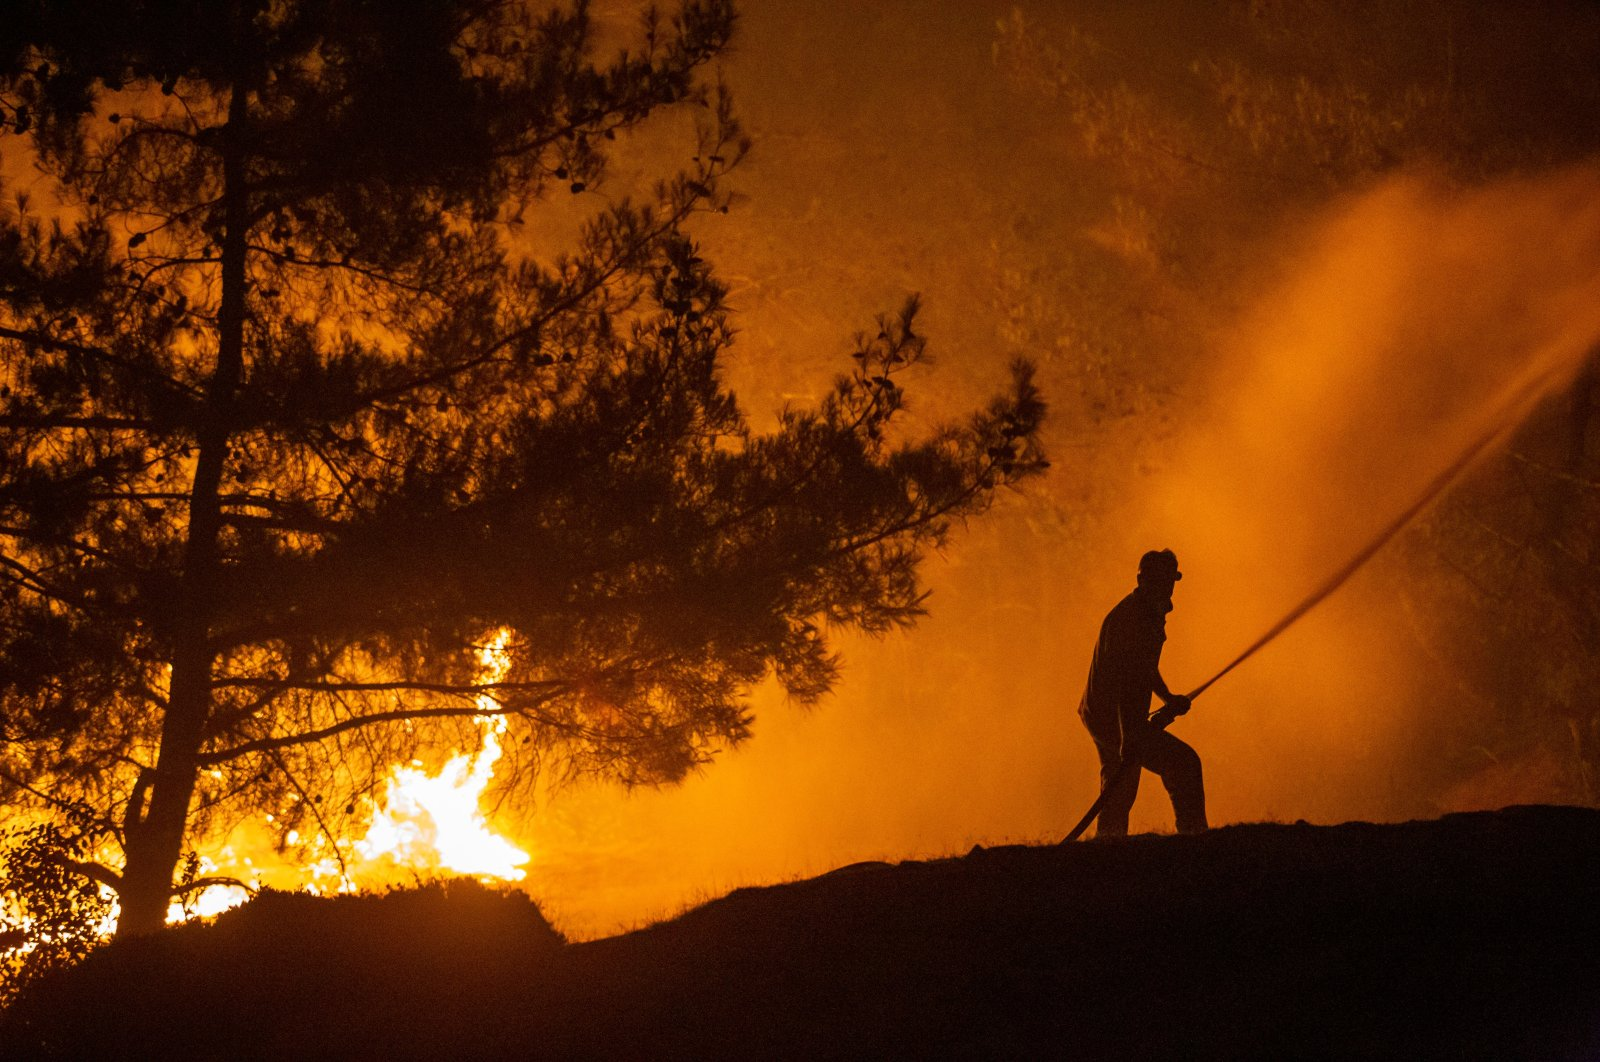 A firefighter sprays water on flames at a forest in Hatay, southern Turkey, July 16, 2021. (AA PHOTO)